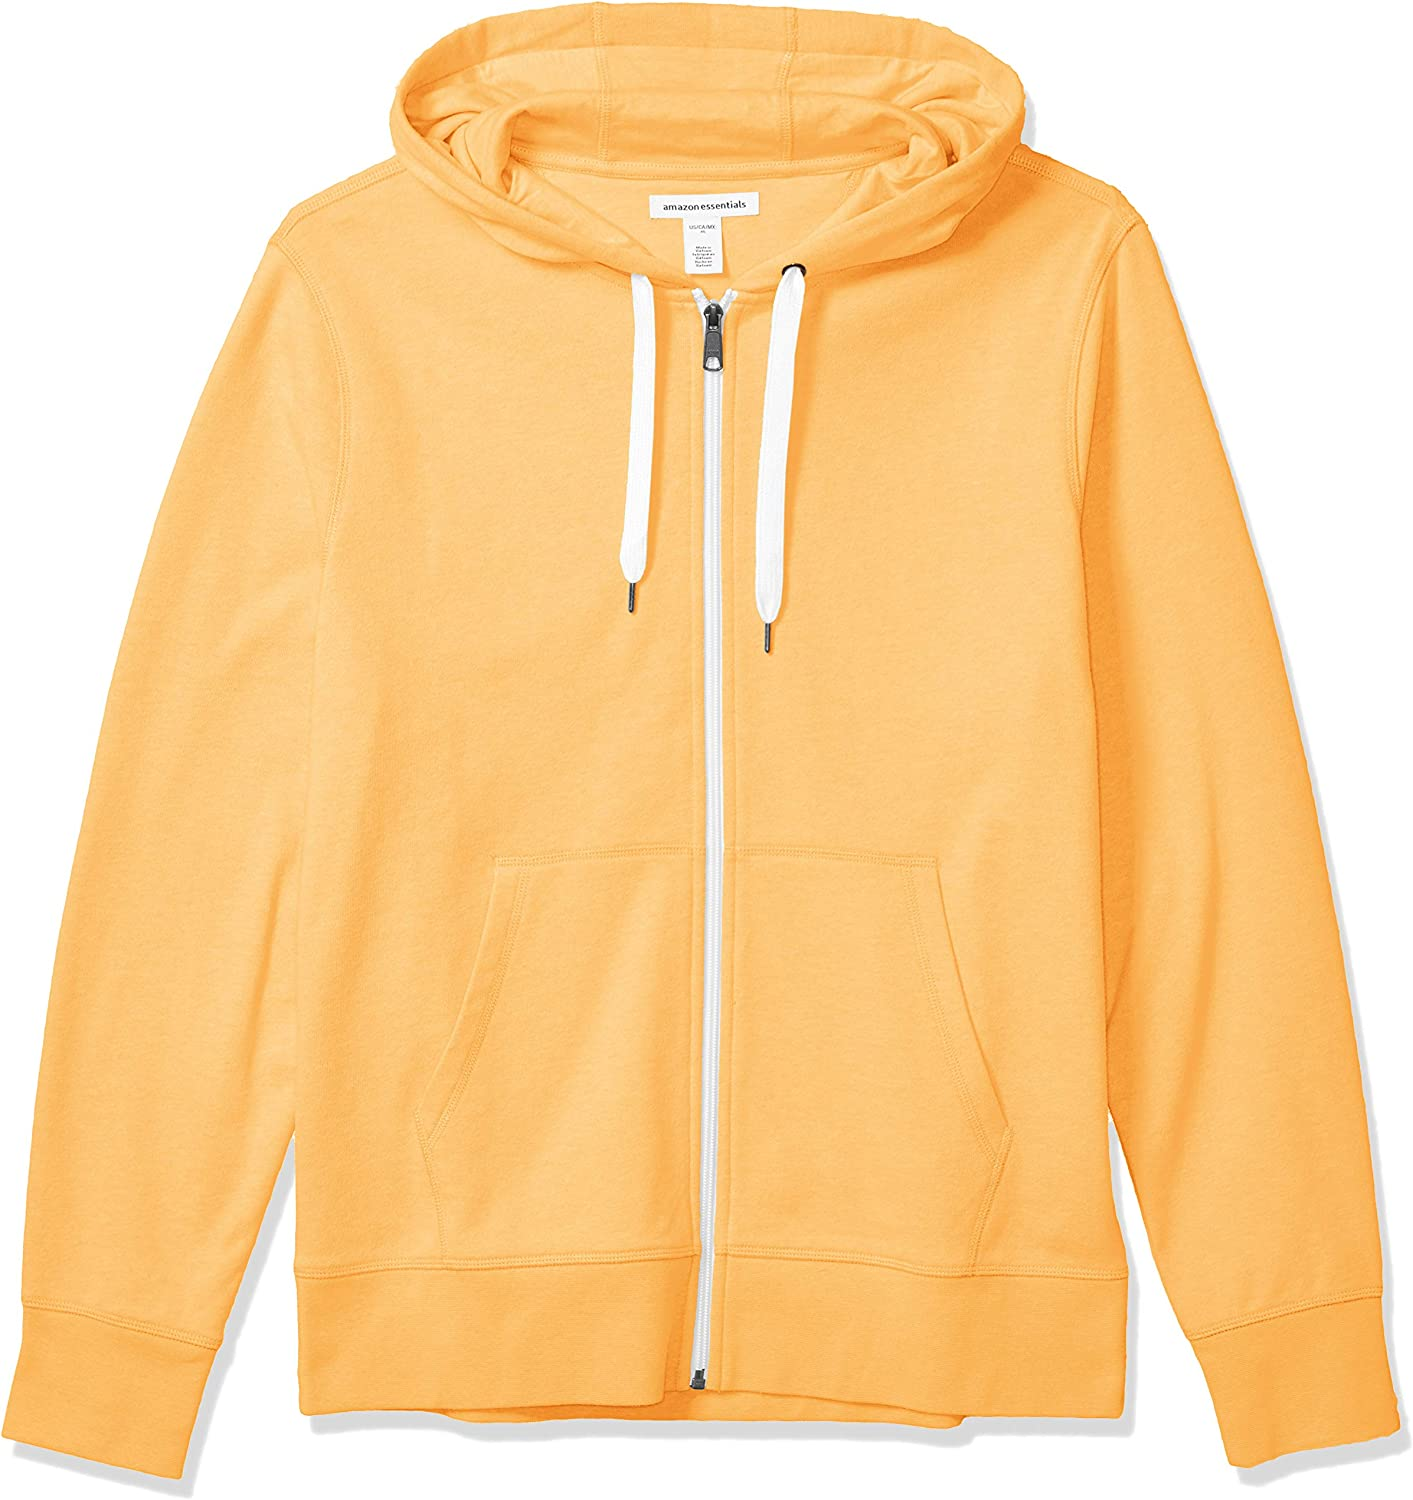 Essentials Men's Lightweight French Terry Full-Zip Hooded Sweatshirt: Clothing